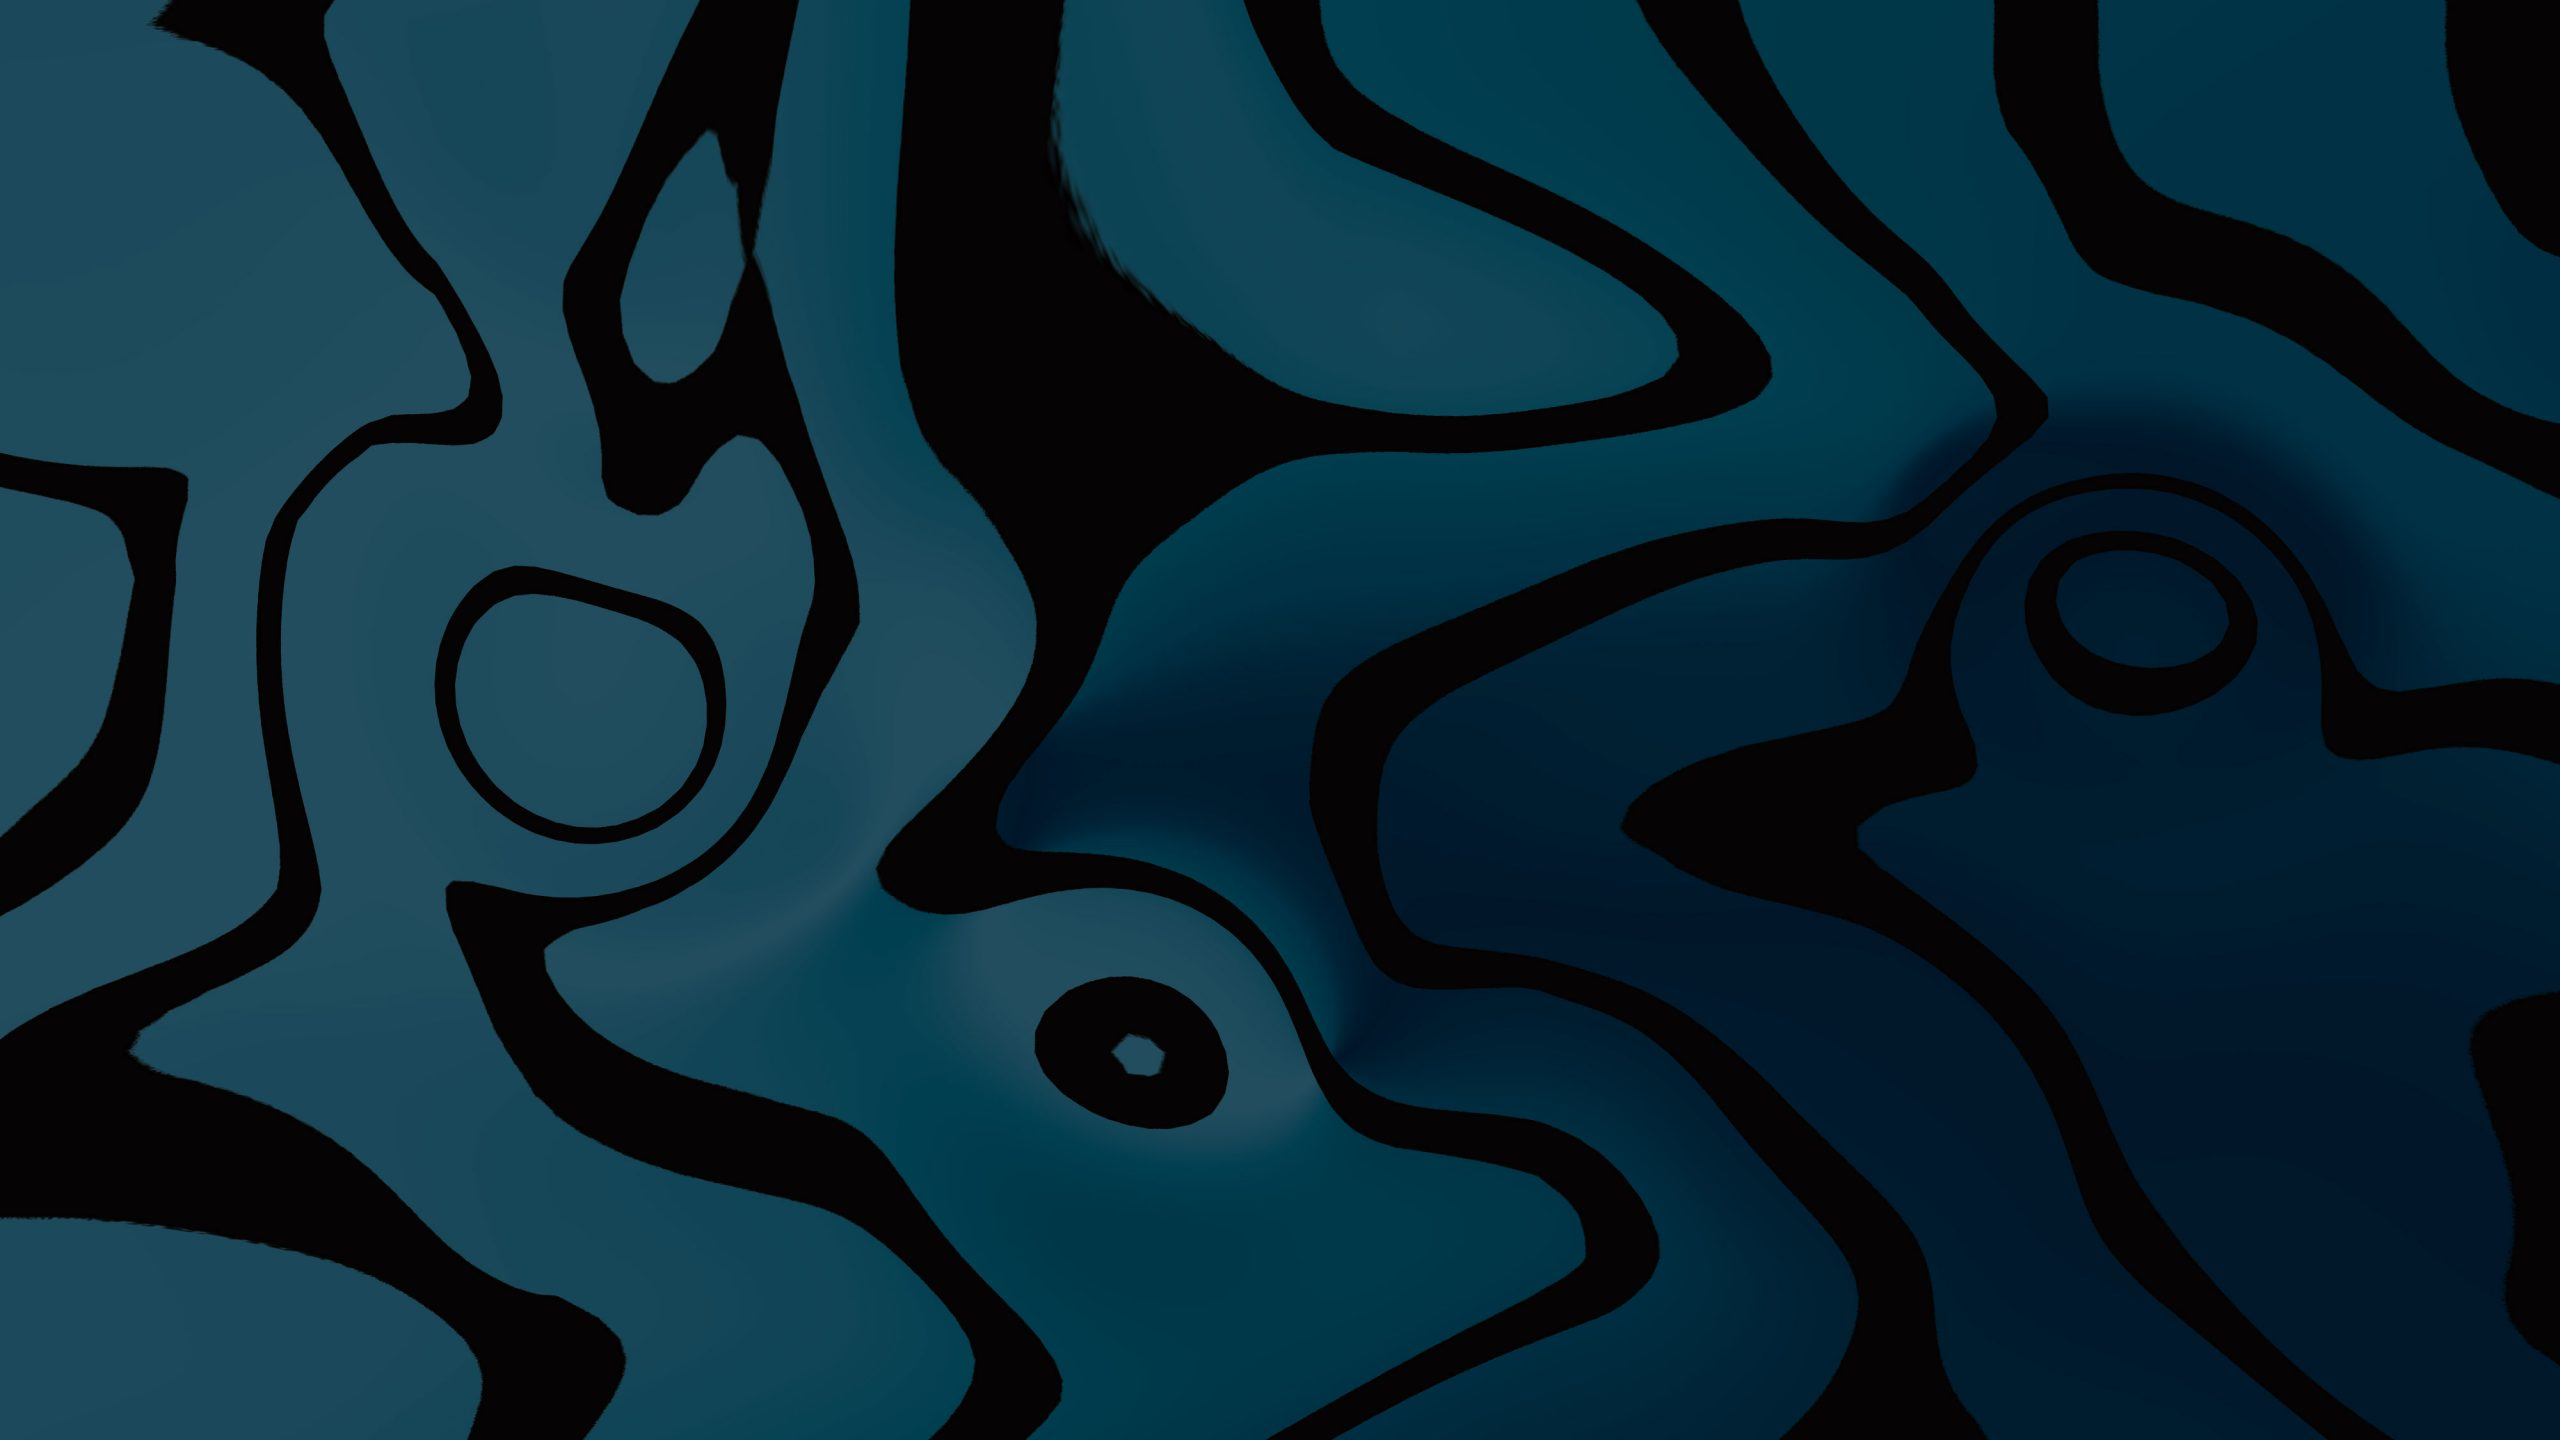 blue-black-abstract-background-wallpaper